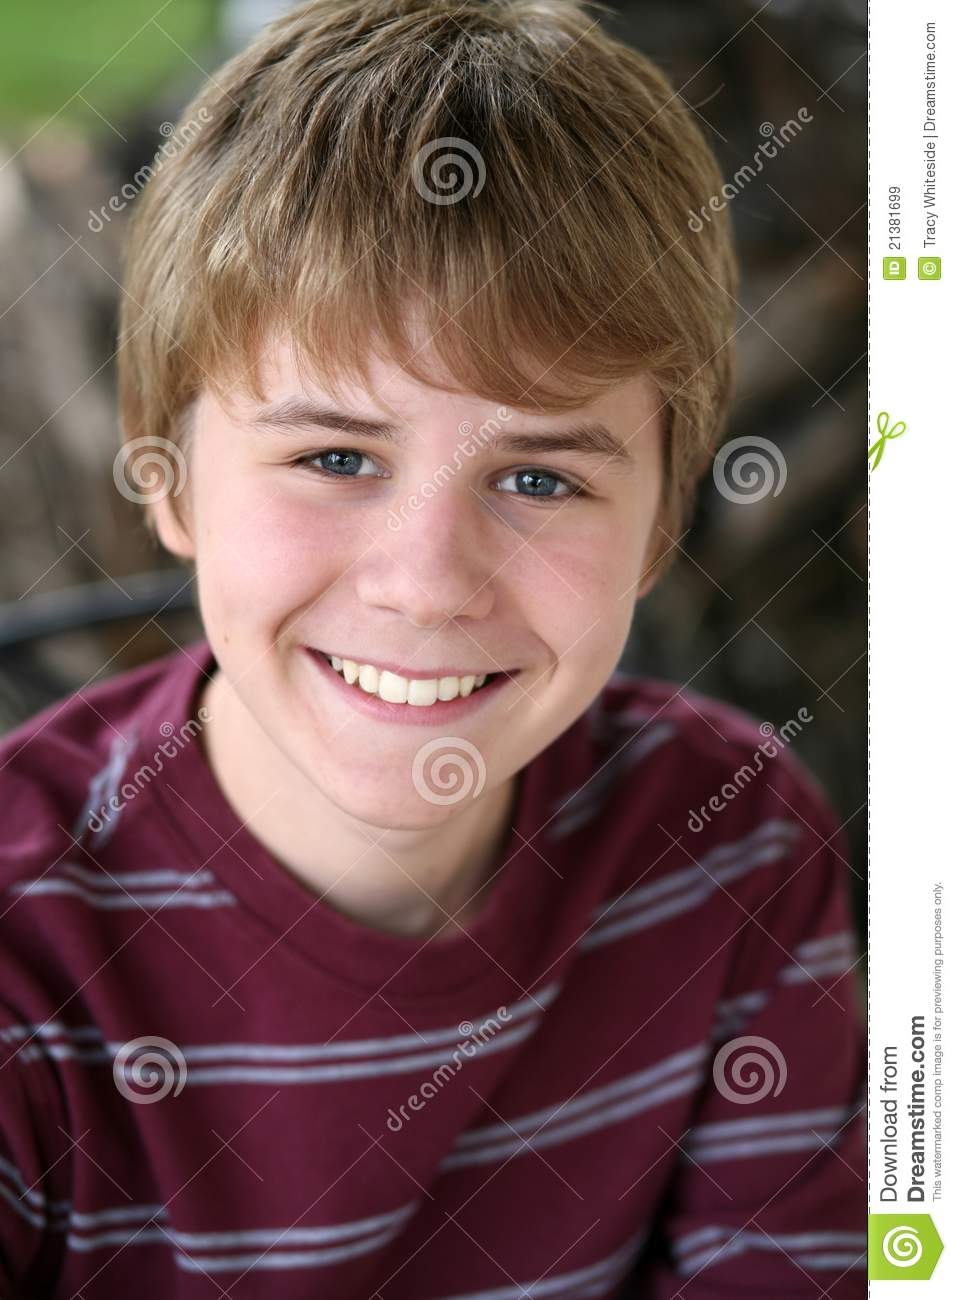 Cute Preteen Boy Smiling Royalty Free Stock Images - Image ...: http://www.dreamstime.com/royalty-free-stock-images-cute-preteen-boy-smiling-image21381699